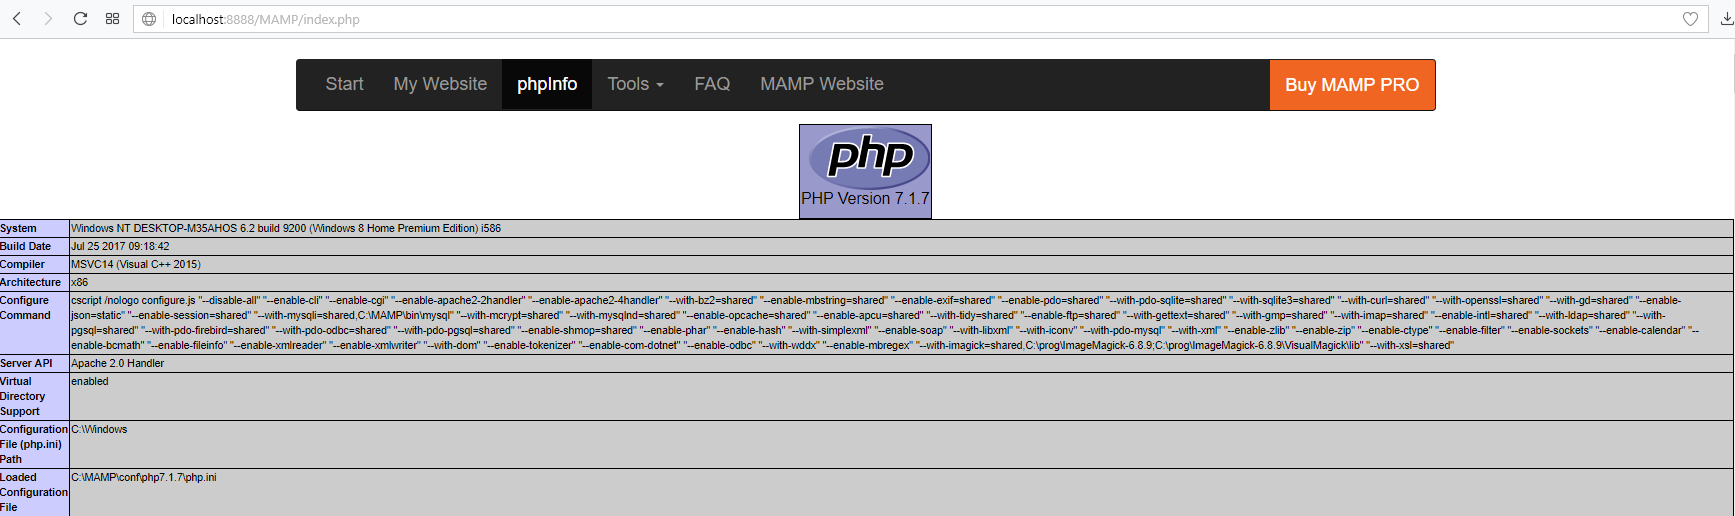 Phpmyadmin Login Page Mamp MAMP phpMyAdmin is not active